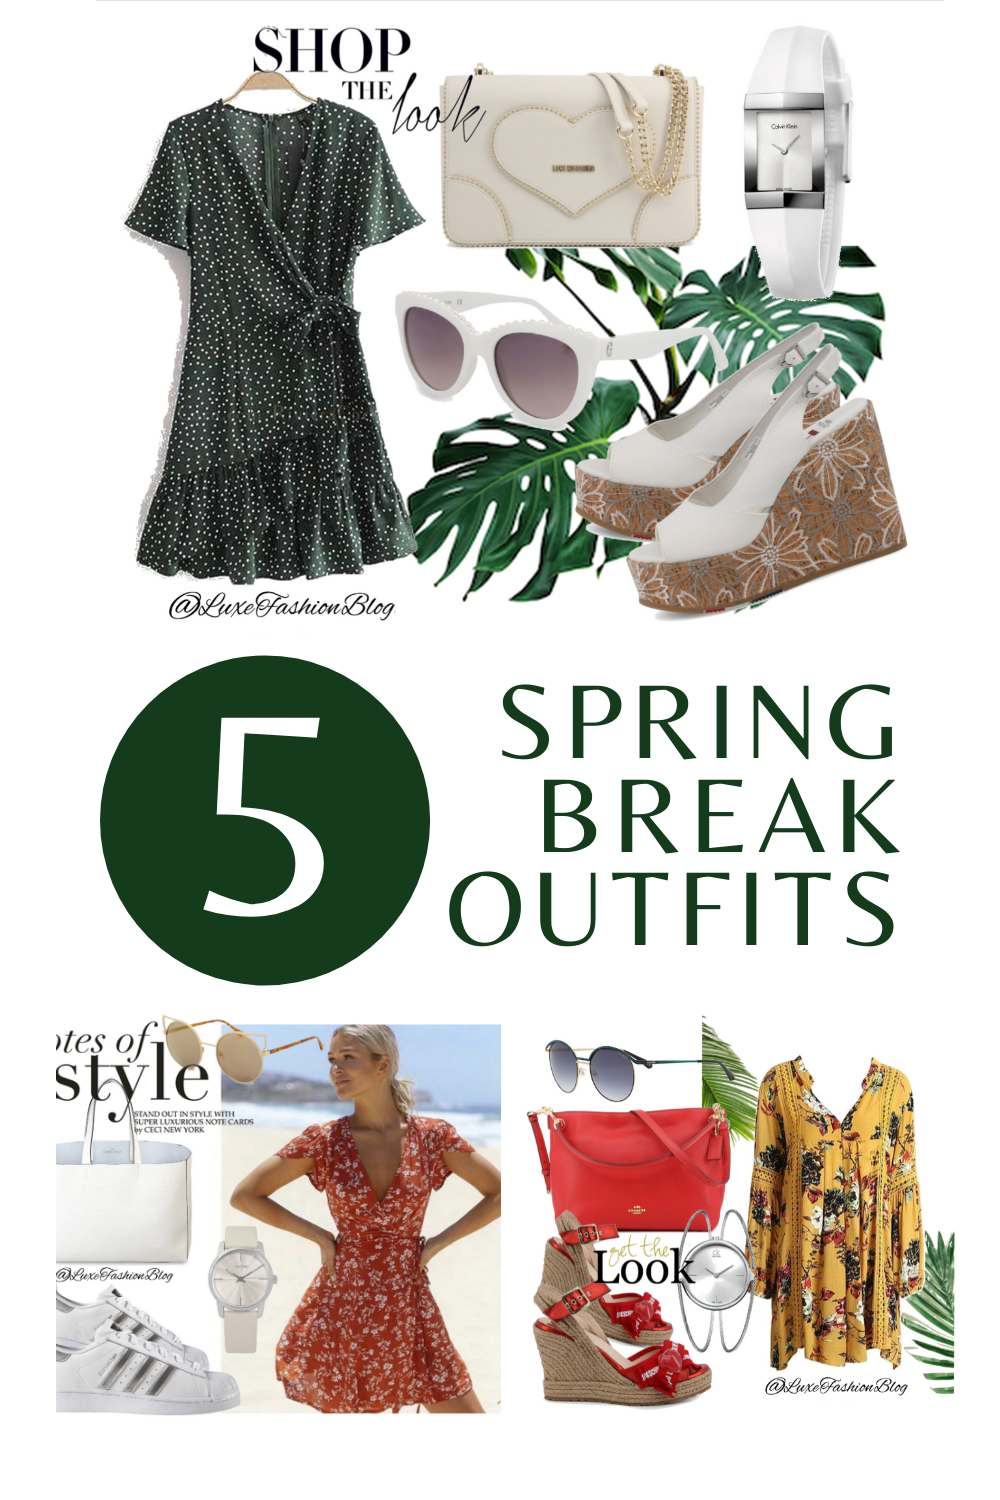 5 Spring Break Outfits & Accessories You Totally Need | Spring Break Outfit Ideas